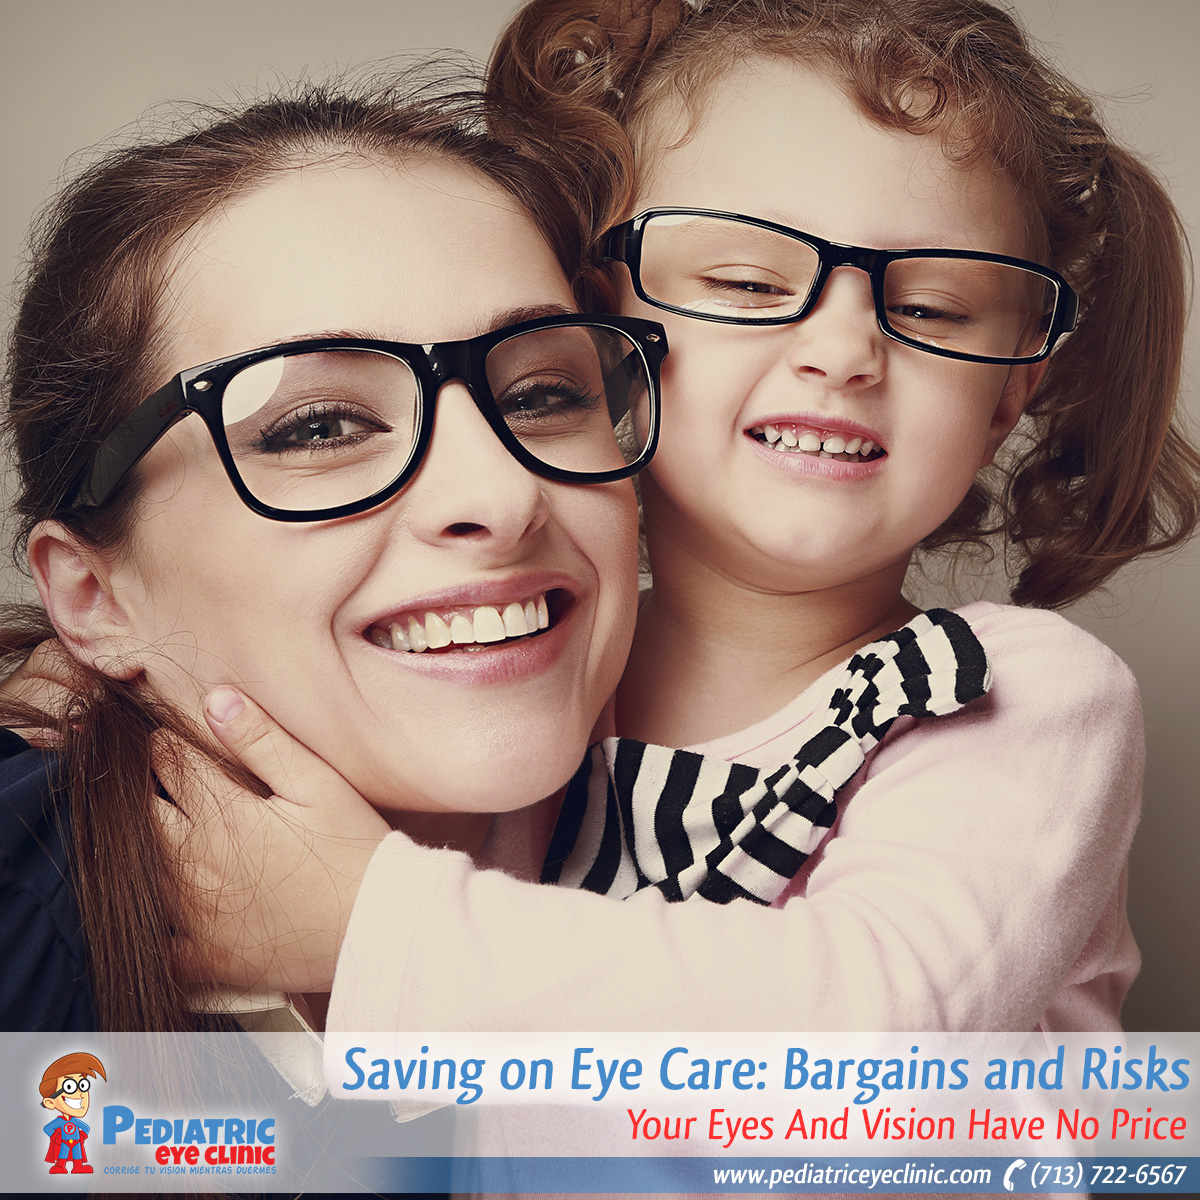 29 Pediatric Optometrist in Houston